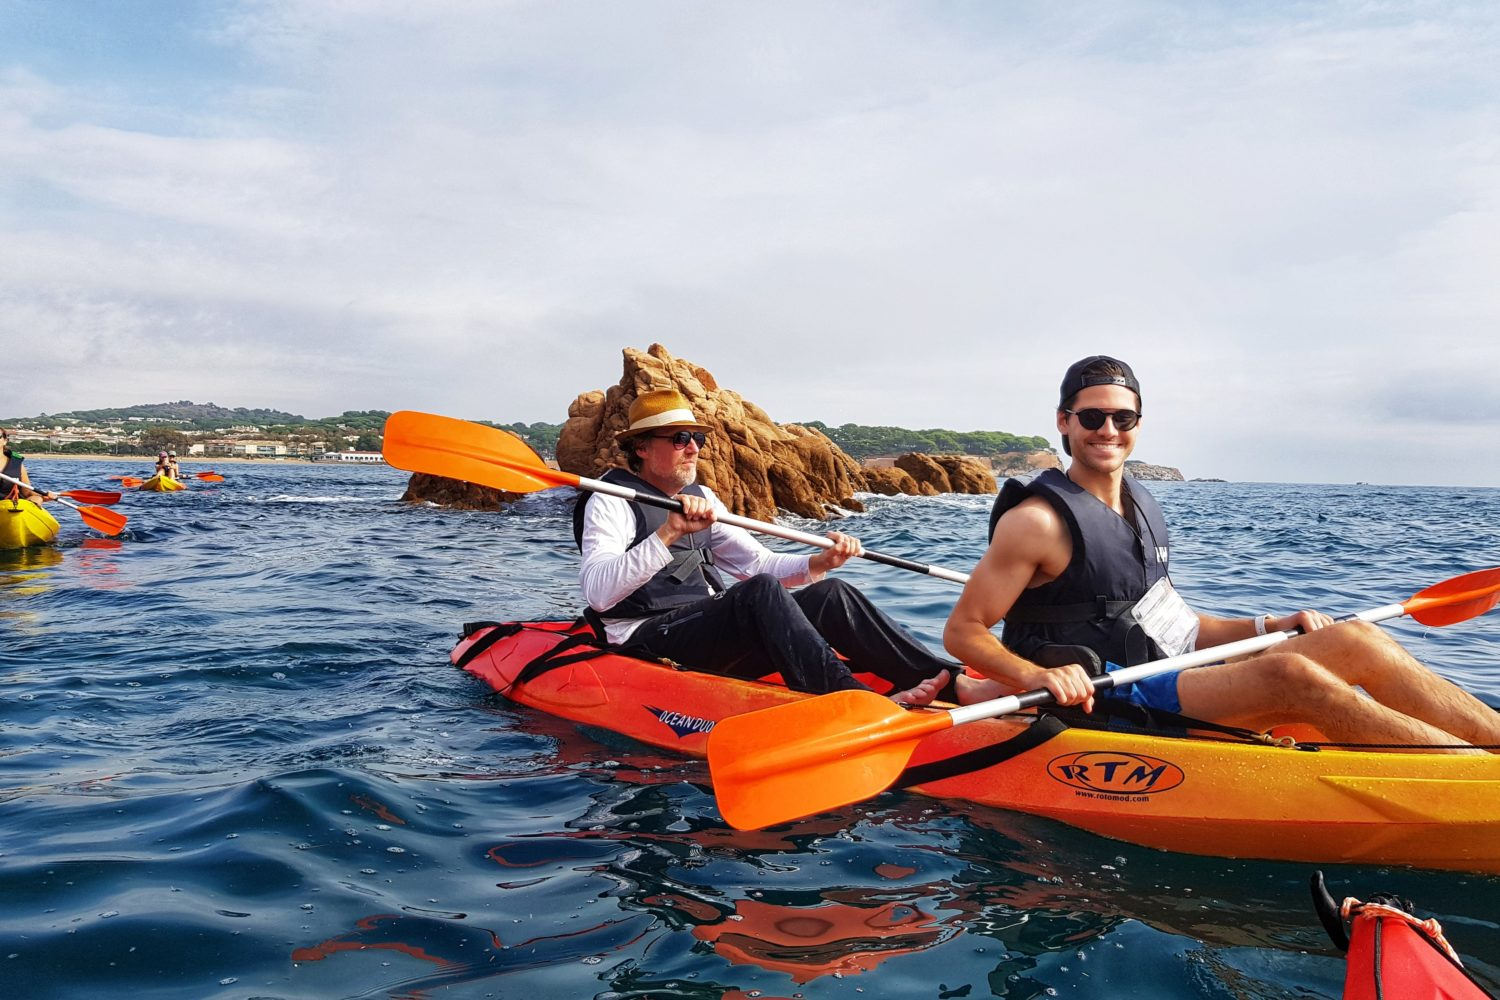 Join the small group kayaking tours in the Costa Brava and have a fantastic day.